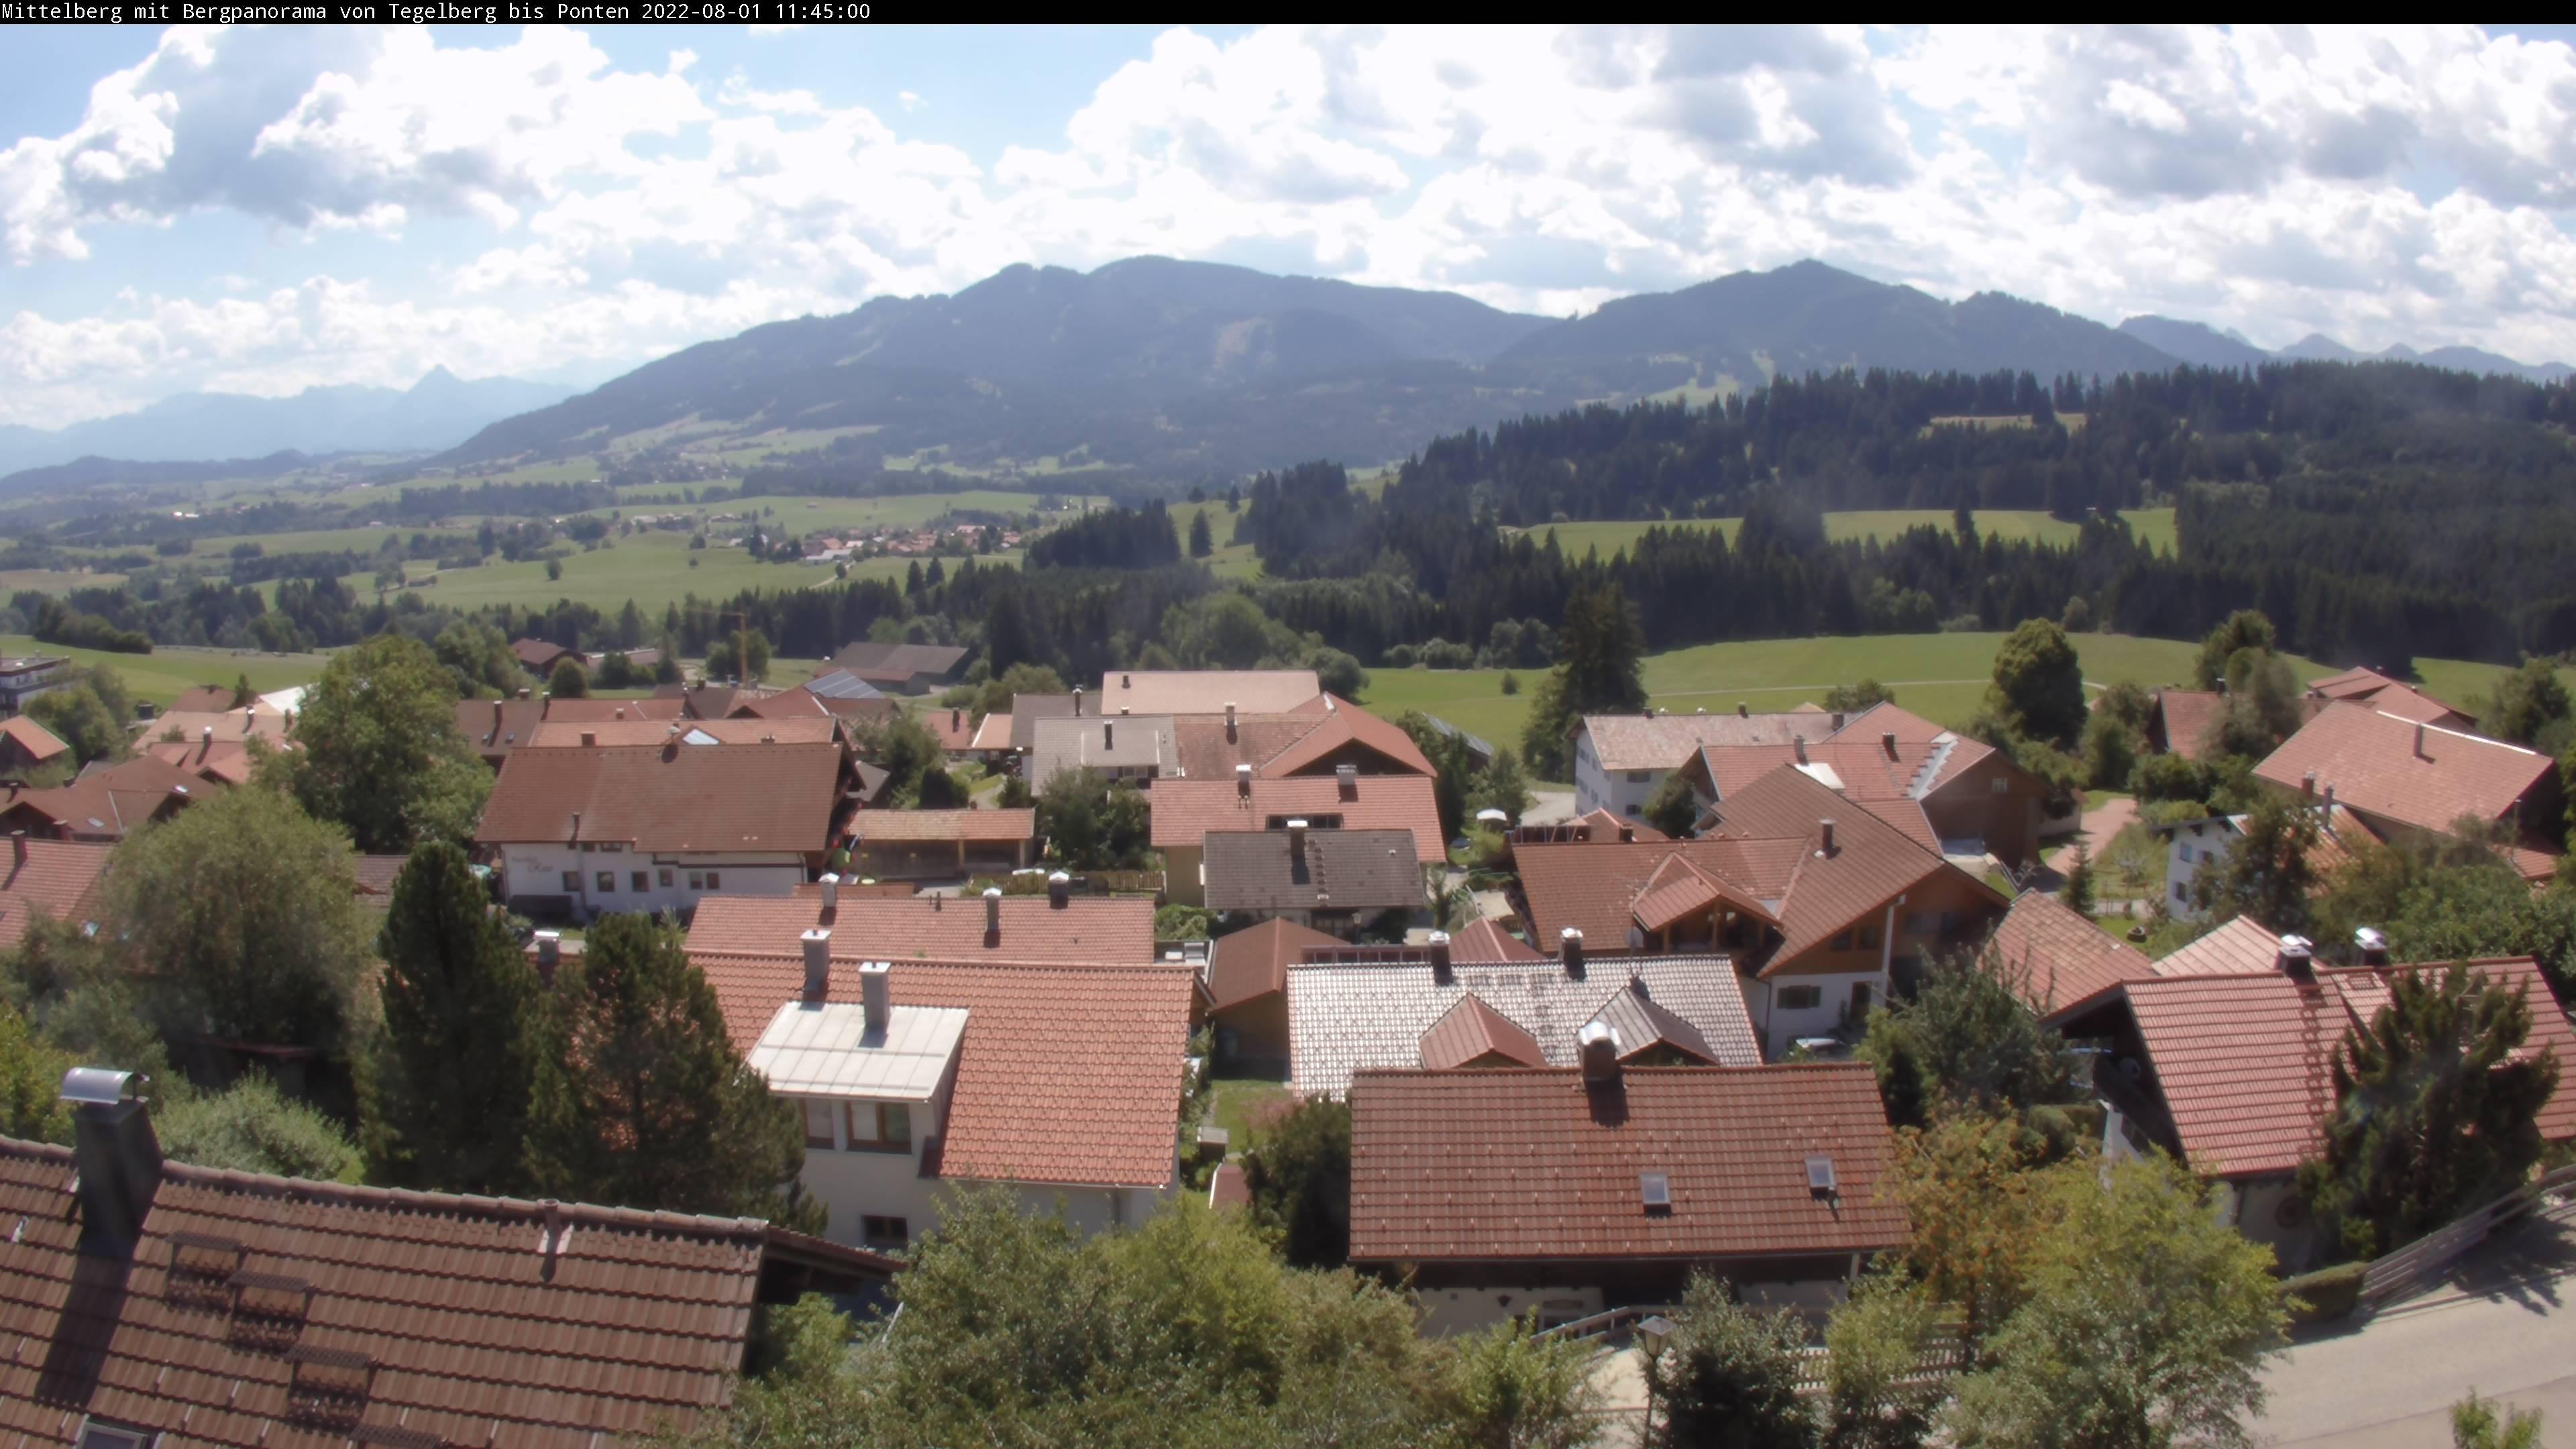 Webcam Oy-Mittelberg Bergpanorama